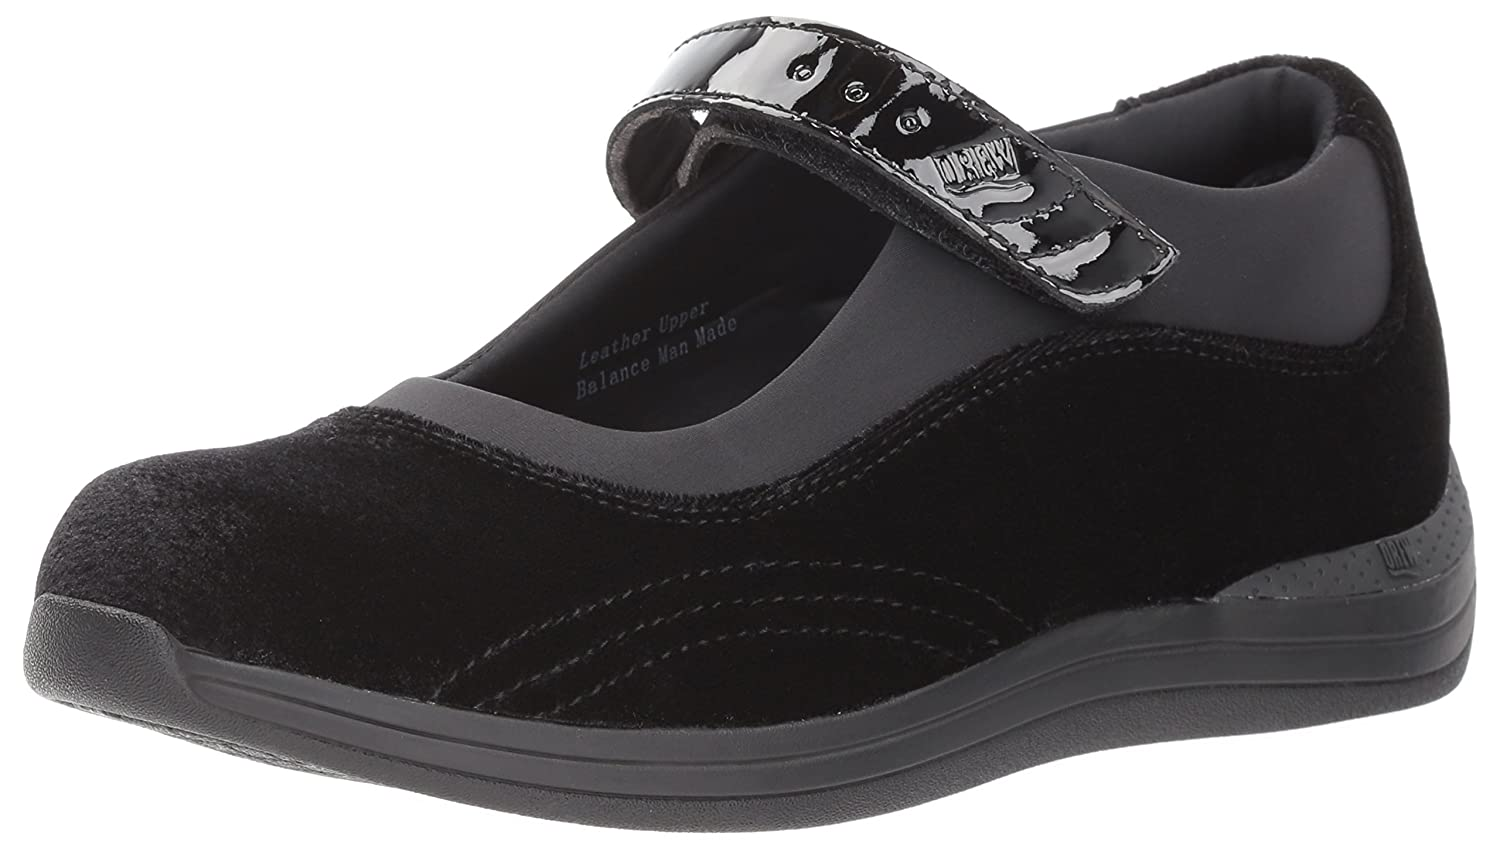 Drew Shoe Women's US|Black Rose Mary Jane B073ZNLTR2 8.5 XW US|Black Women's Velvet Patent 8770fd